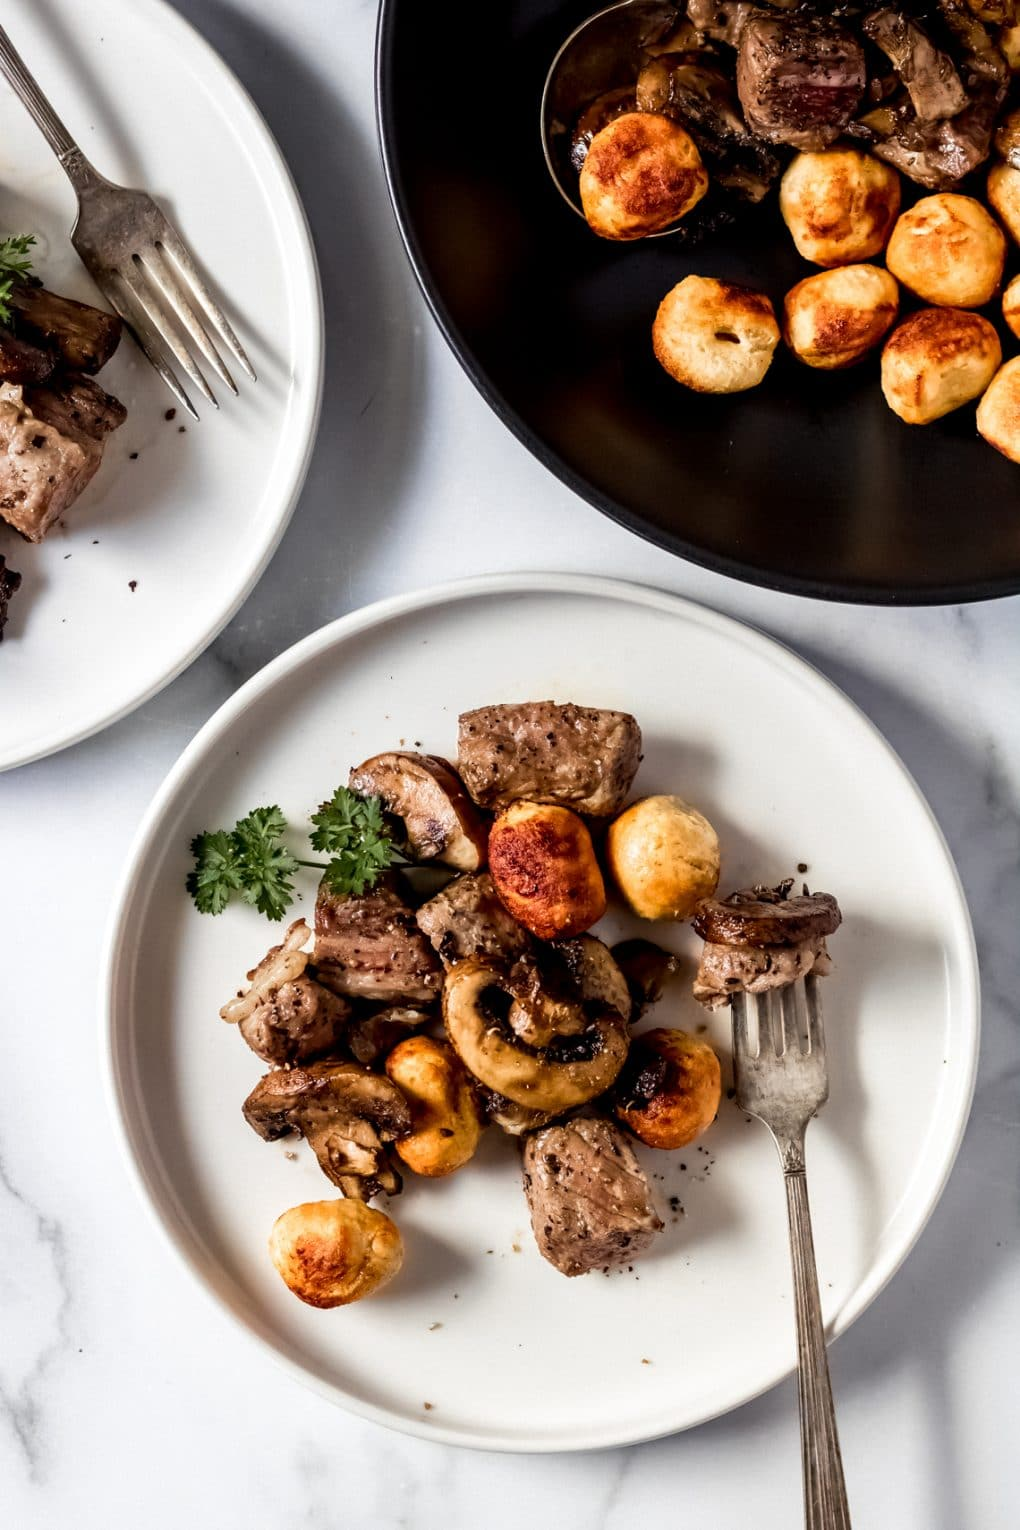 a white plate with gnocchi and mushroom & steak bites on it with a fork.